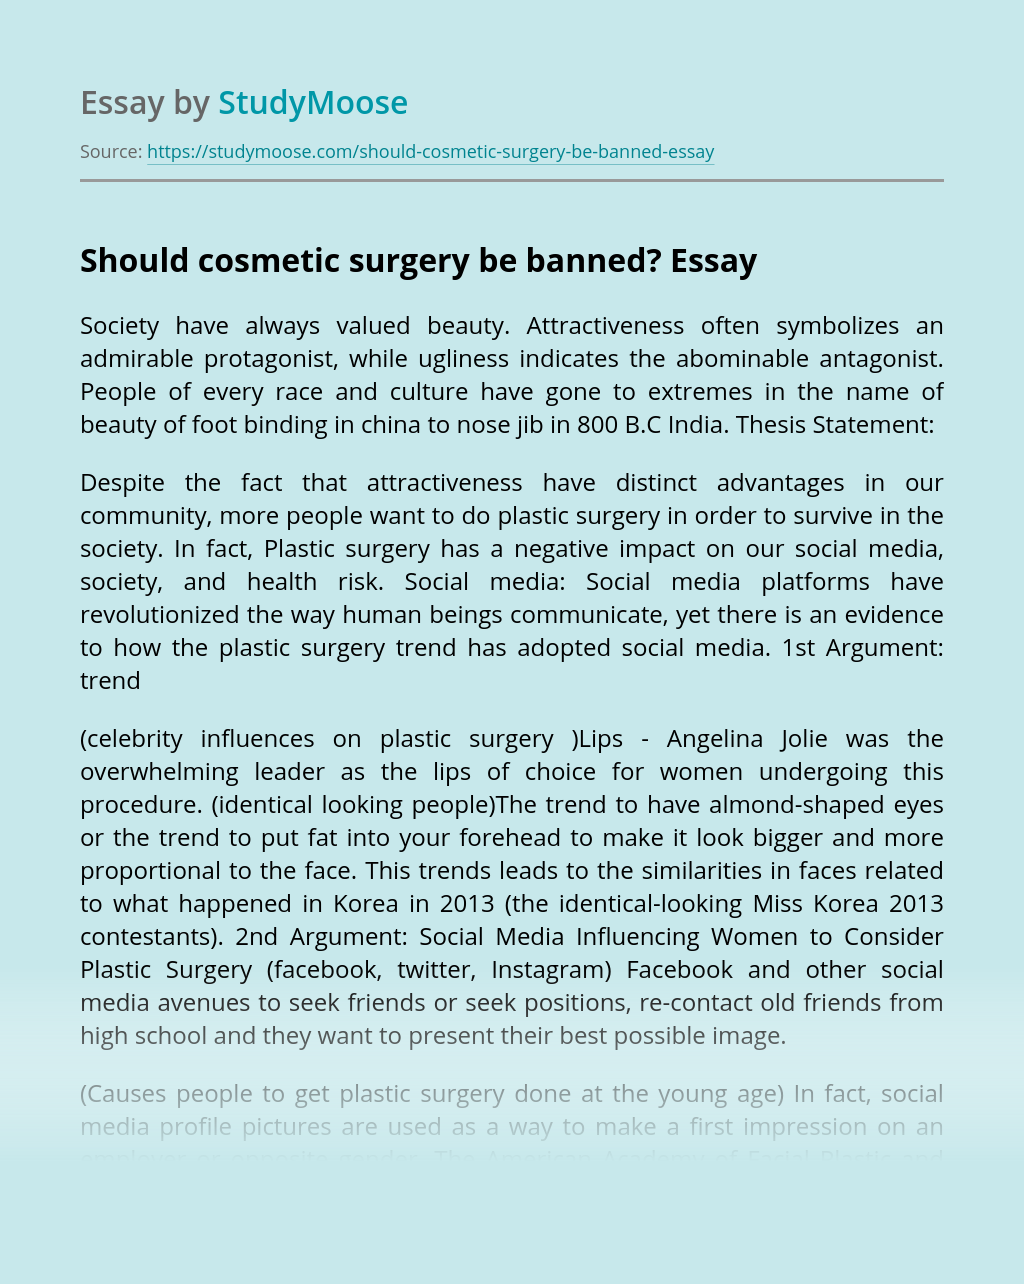 Should cosmetic surgery be banned?